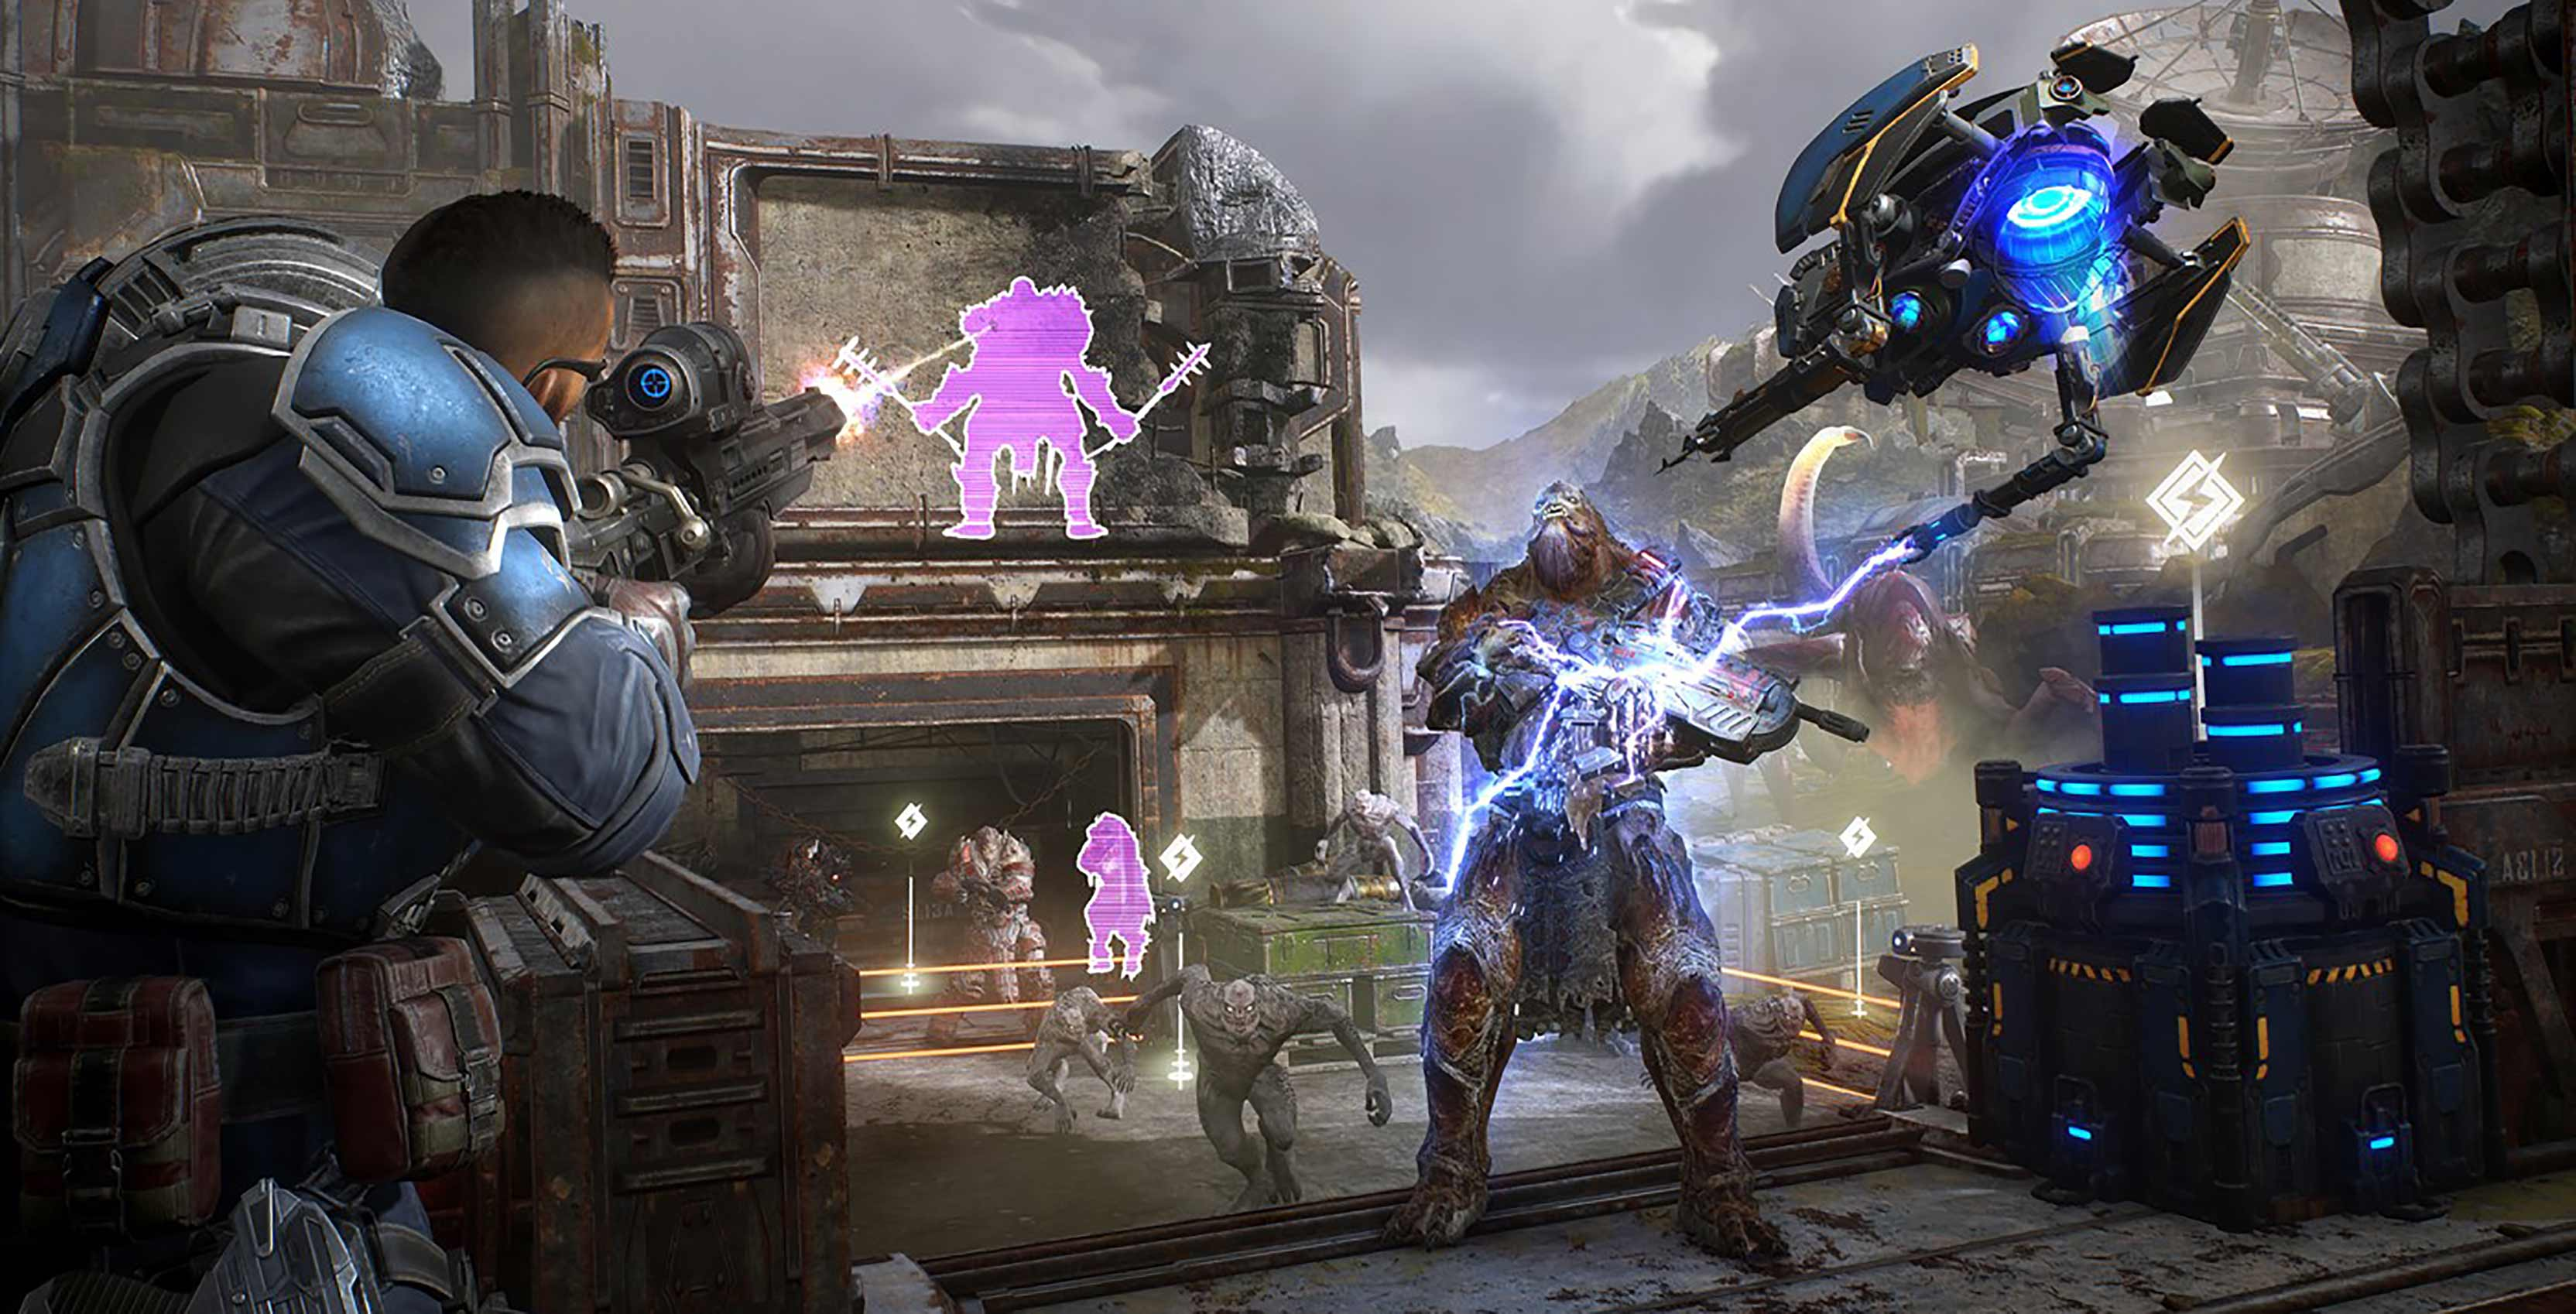 Gears 5 multiplayer director talks evolving Horde Mode, Halo: Reach crossover